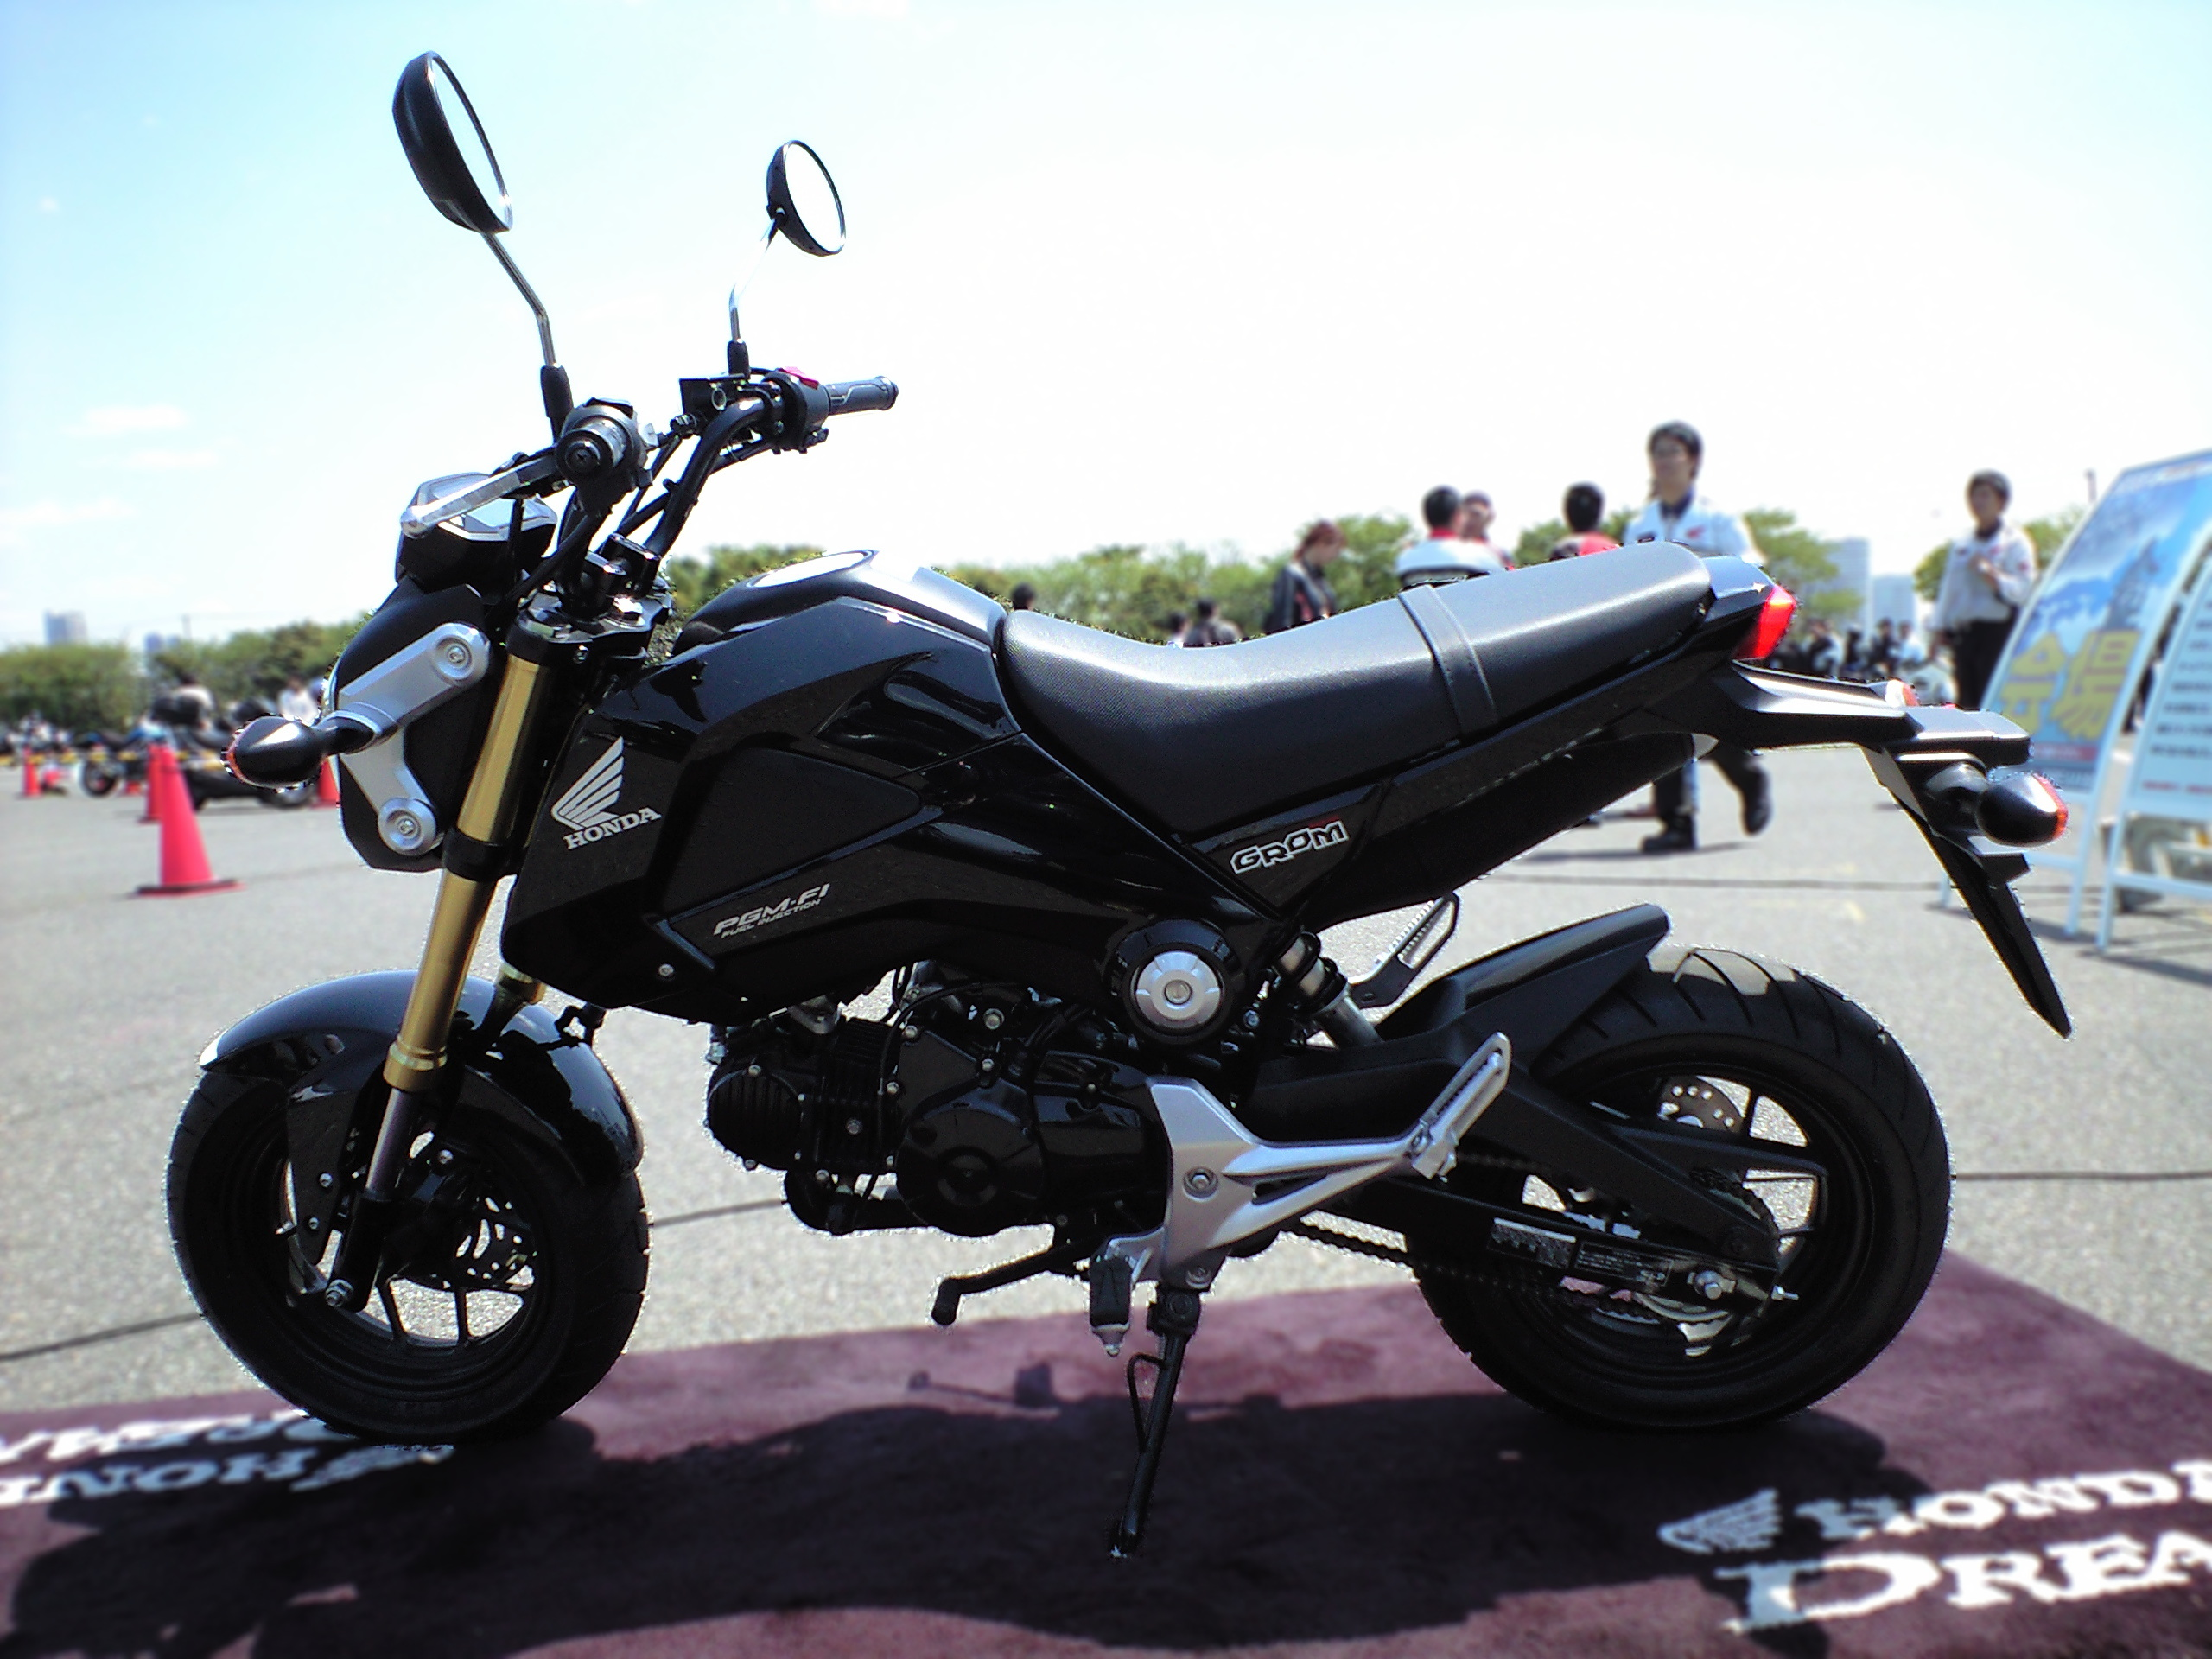 Honda grom 125 - 125er Monkey Bike